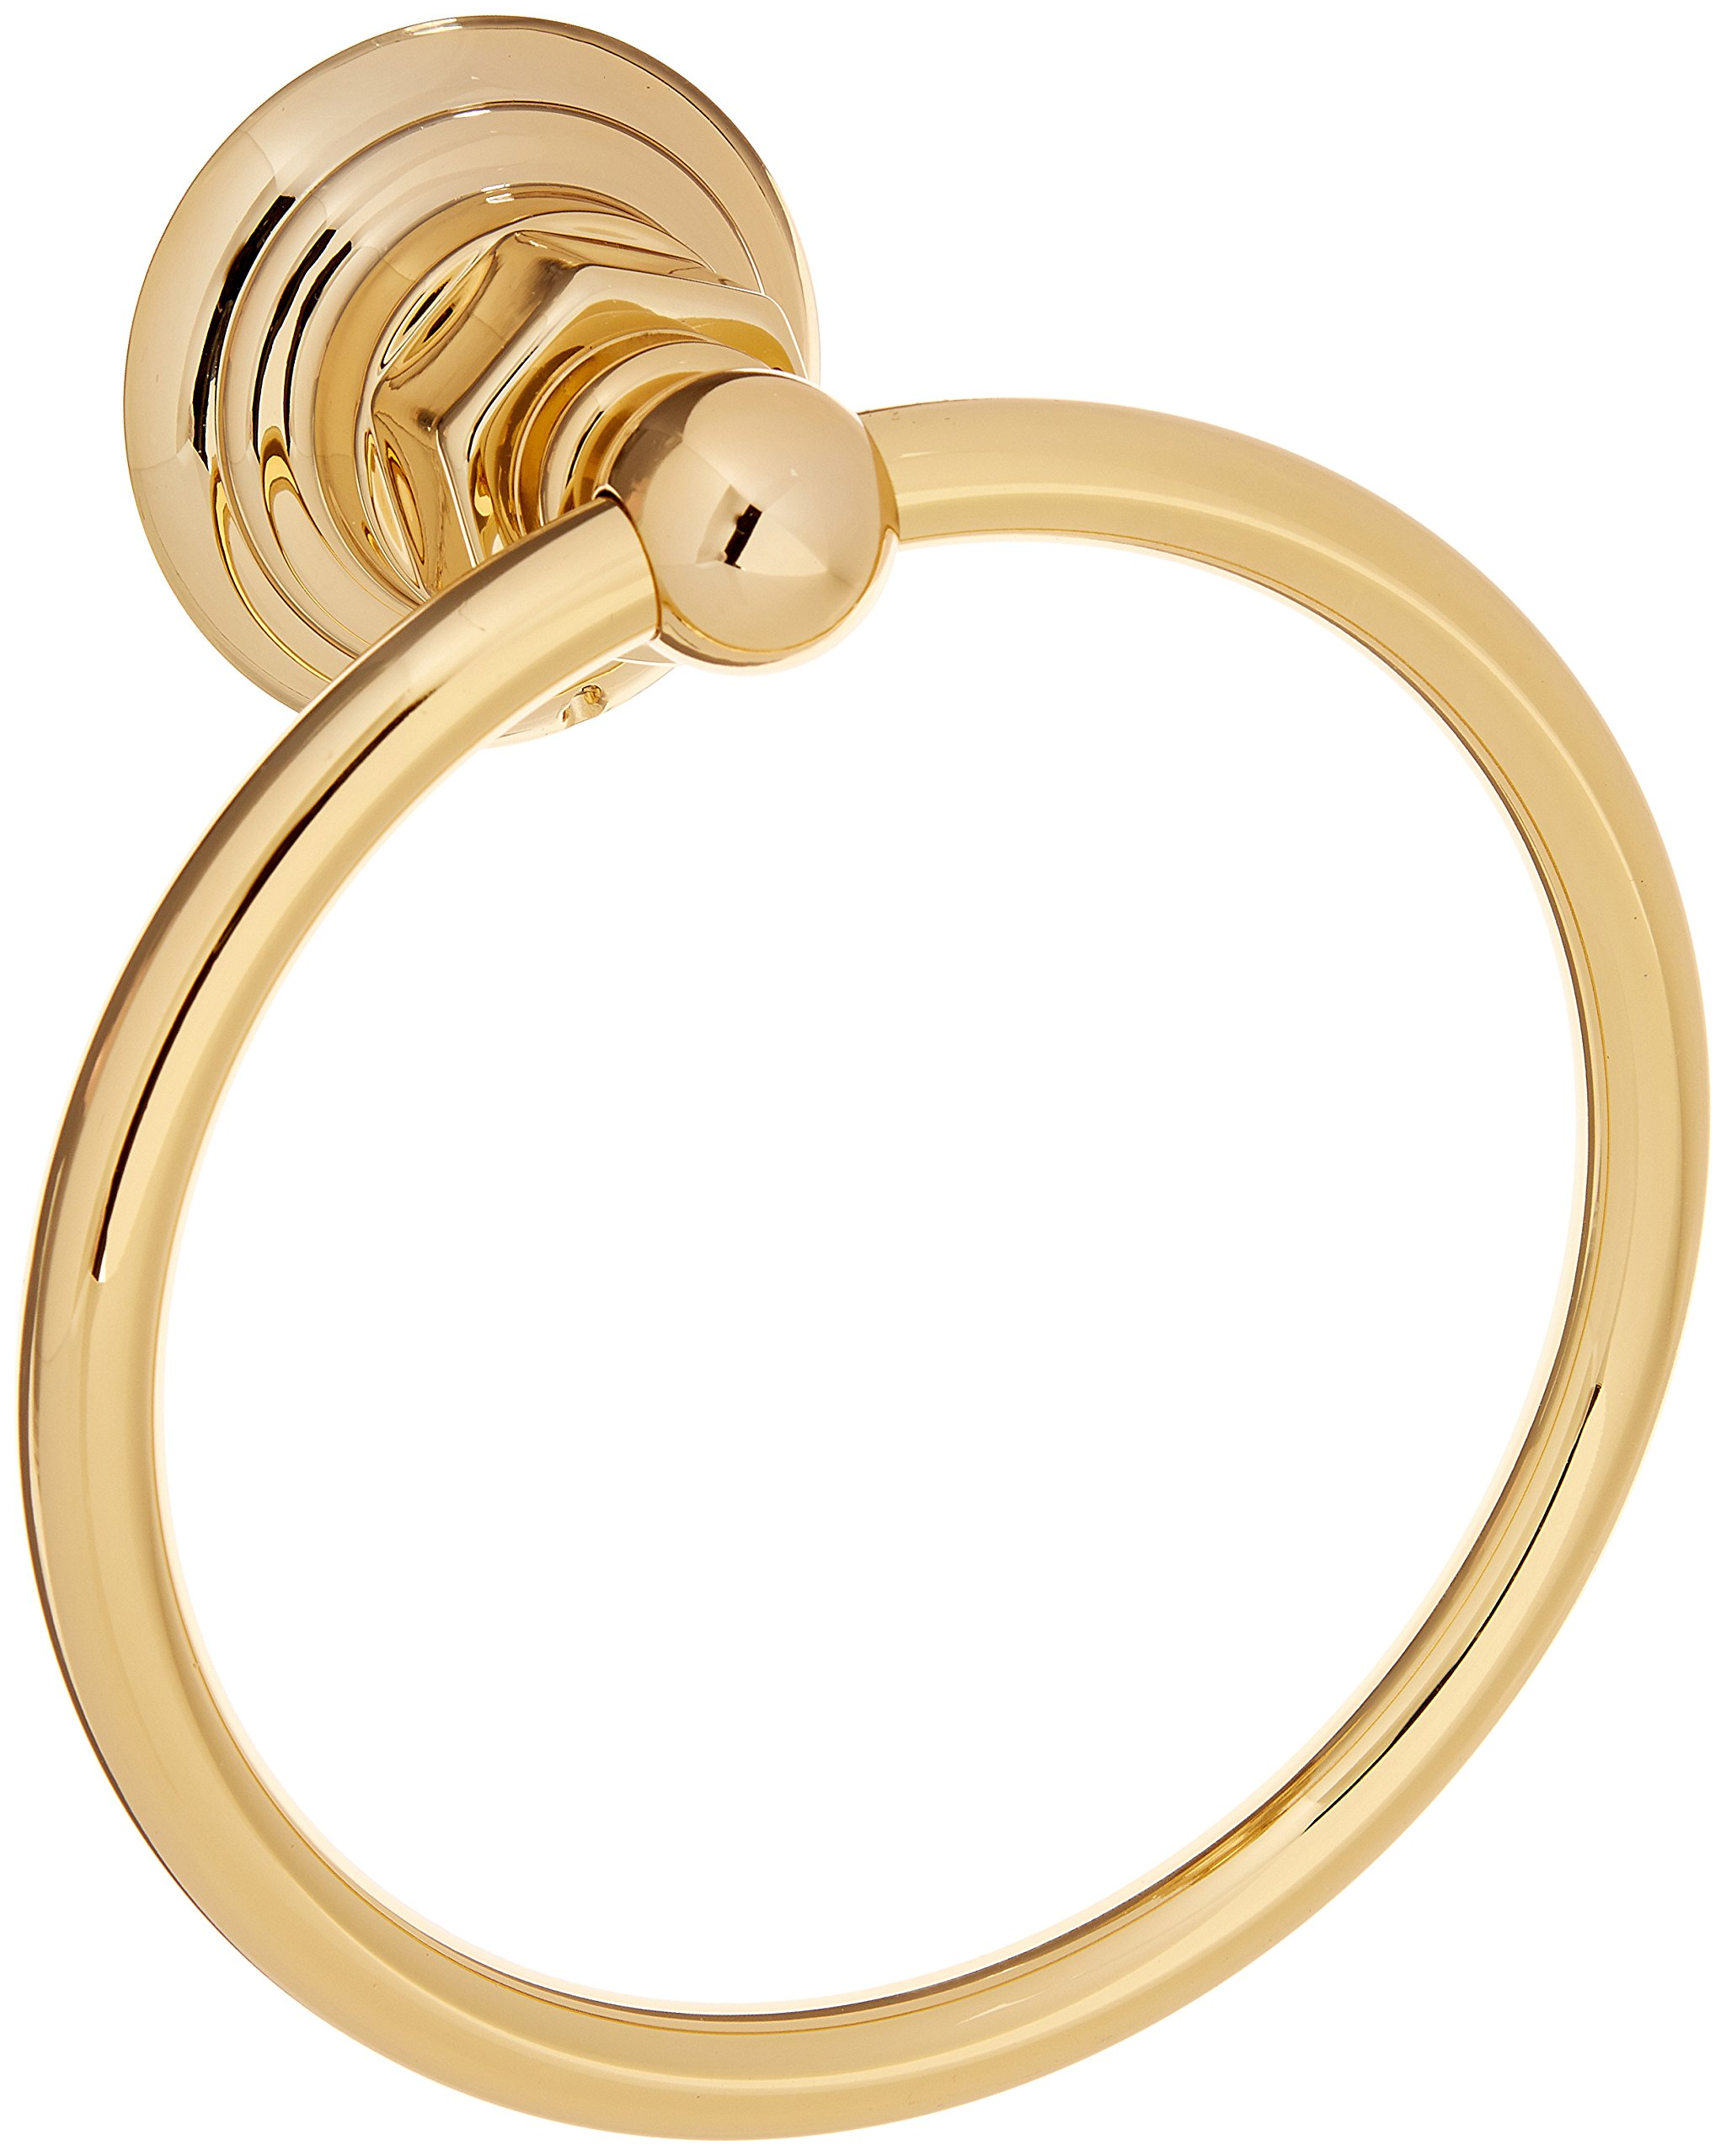 Rohl ROT4Ib Country Bath Towel Ring in Inca Brass by Rohl